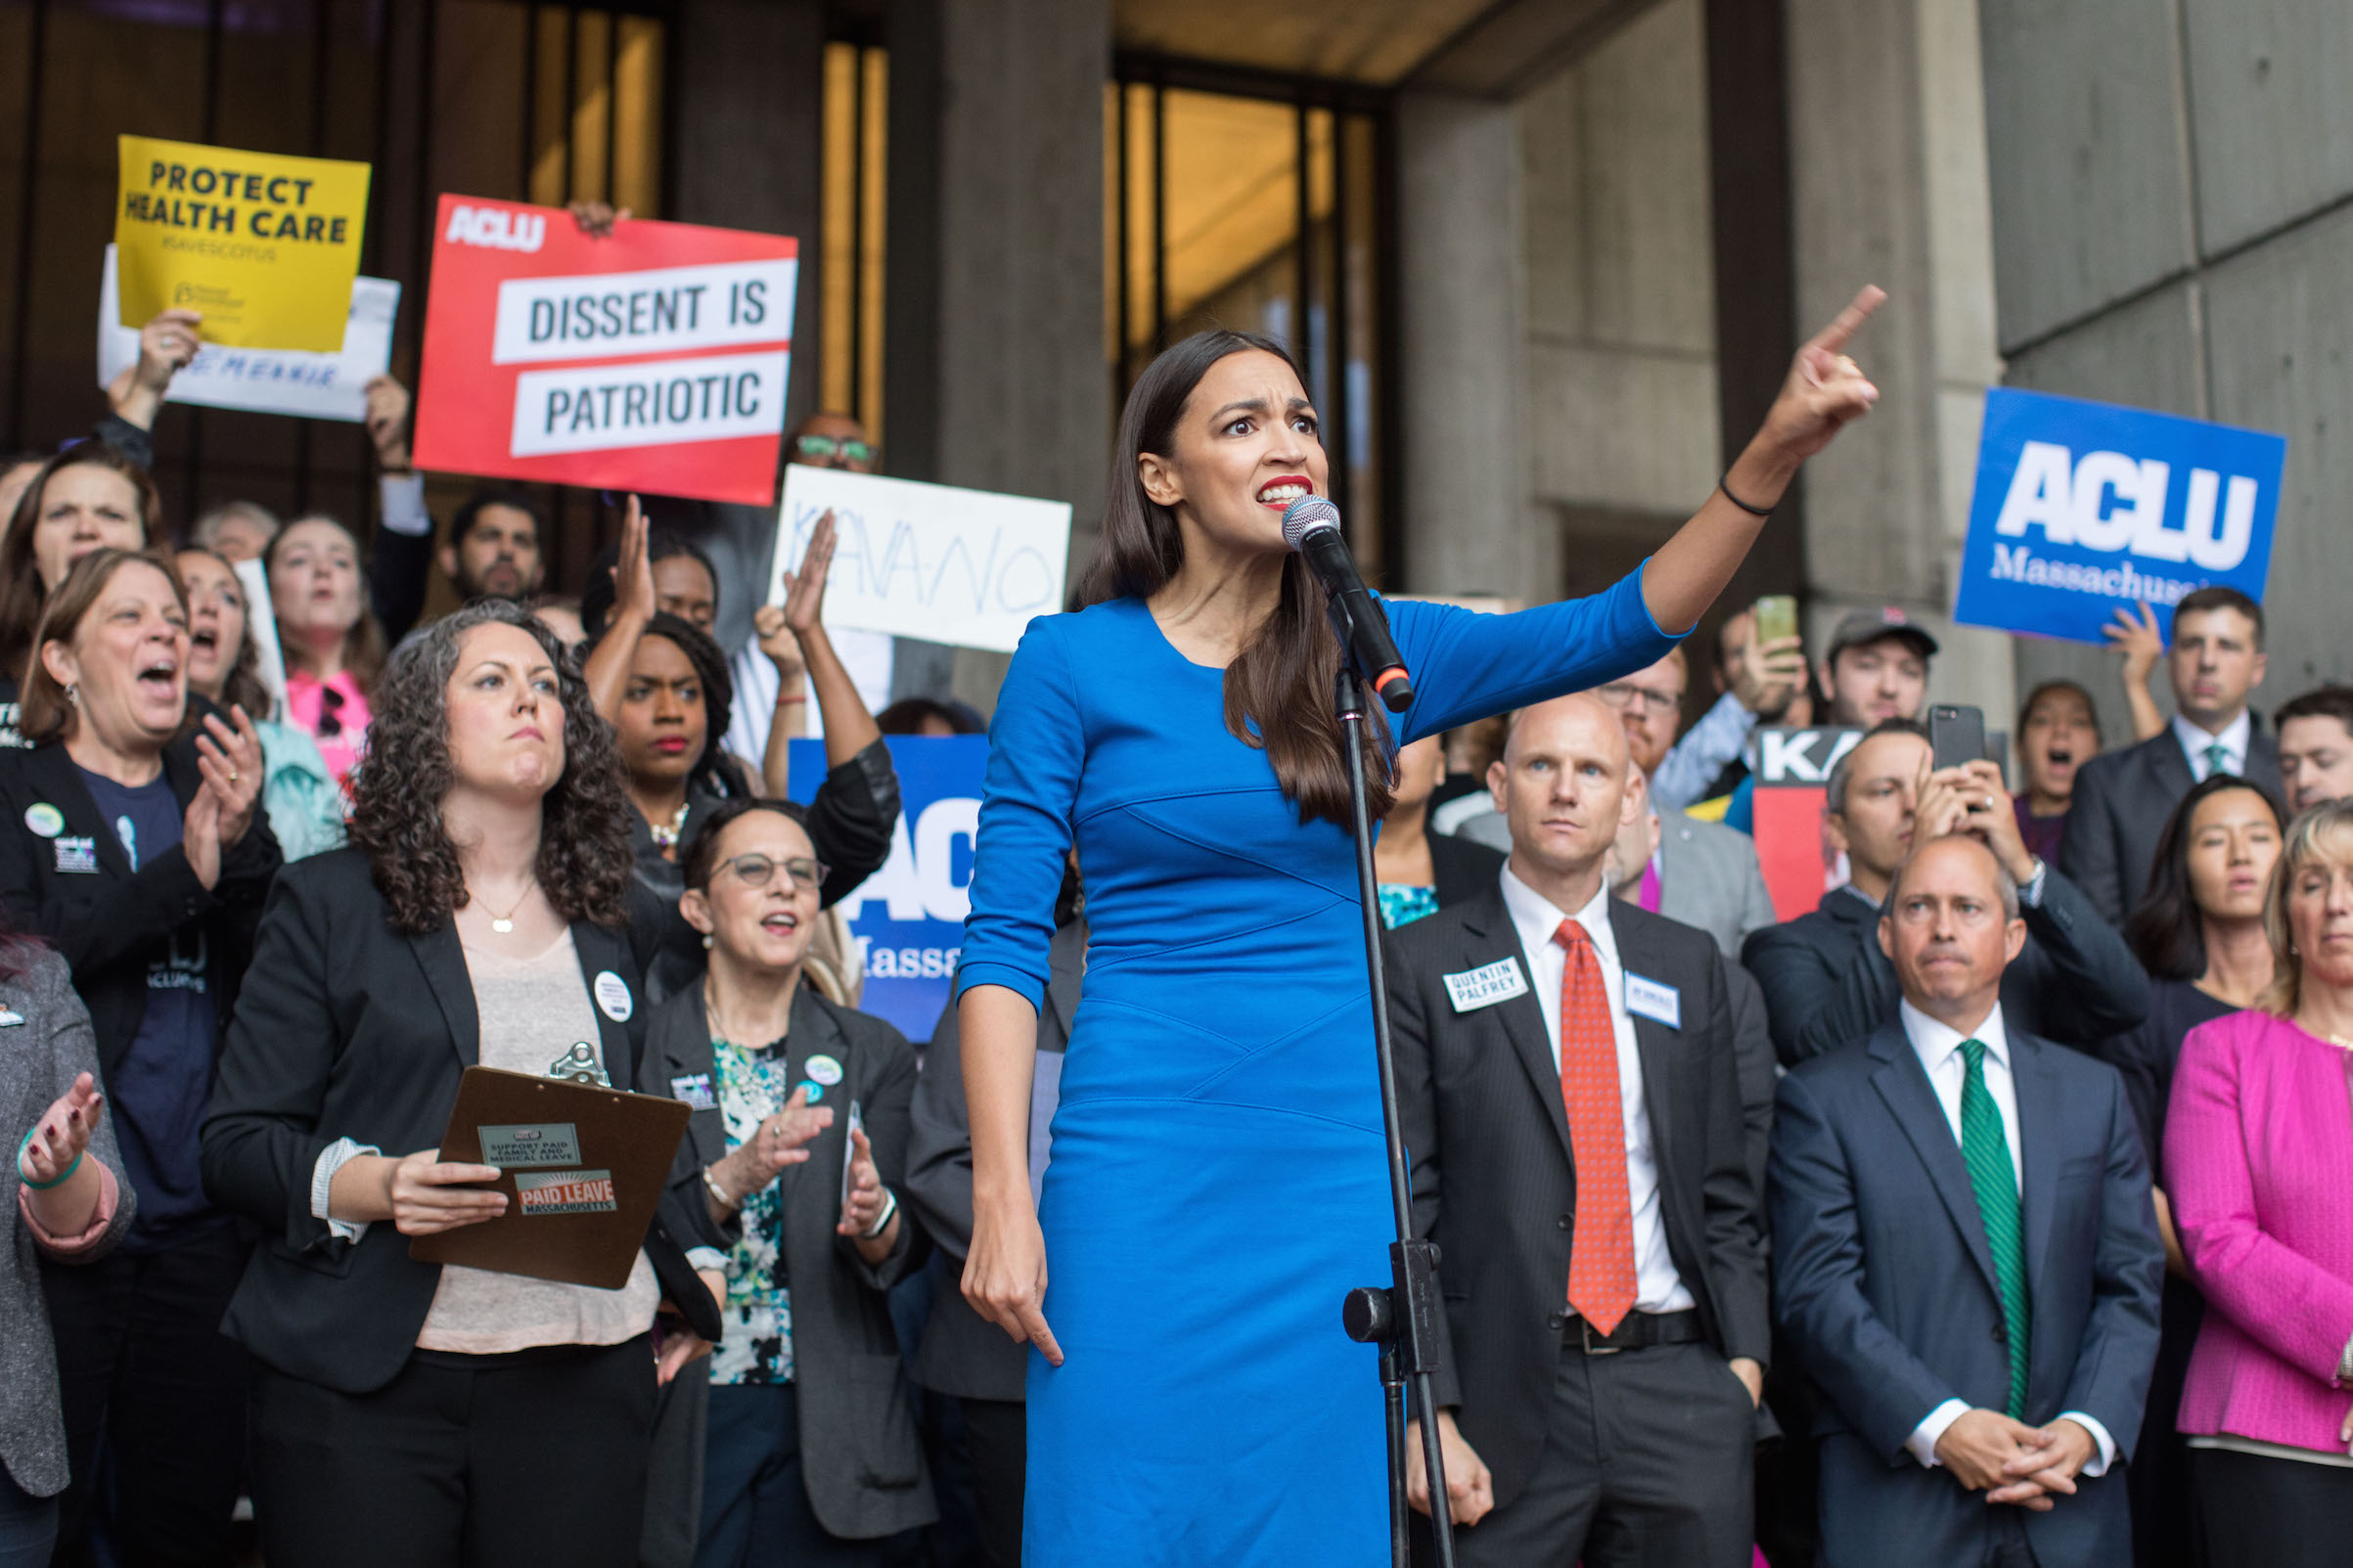 New York Democratic congressional candidate Alexandria Ocasio-Cortez speaks at a rally calling on Sen. Jeff Flake (R-AZ) to reject Judge Brett Kavanaugh's nomination to the Supreme Court on Oct. 1, 2018 in Boston.